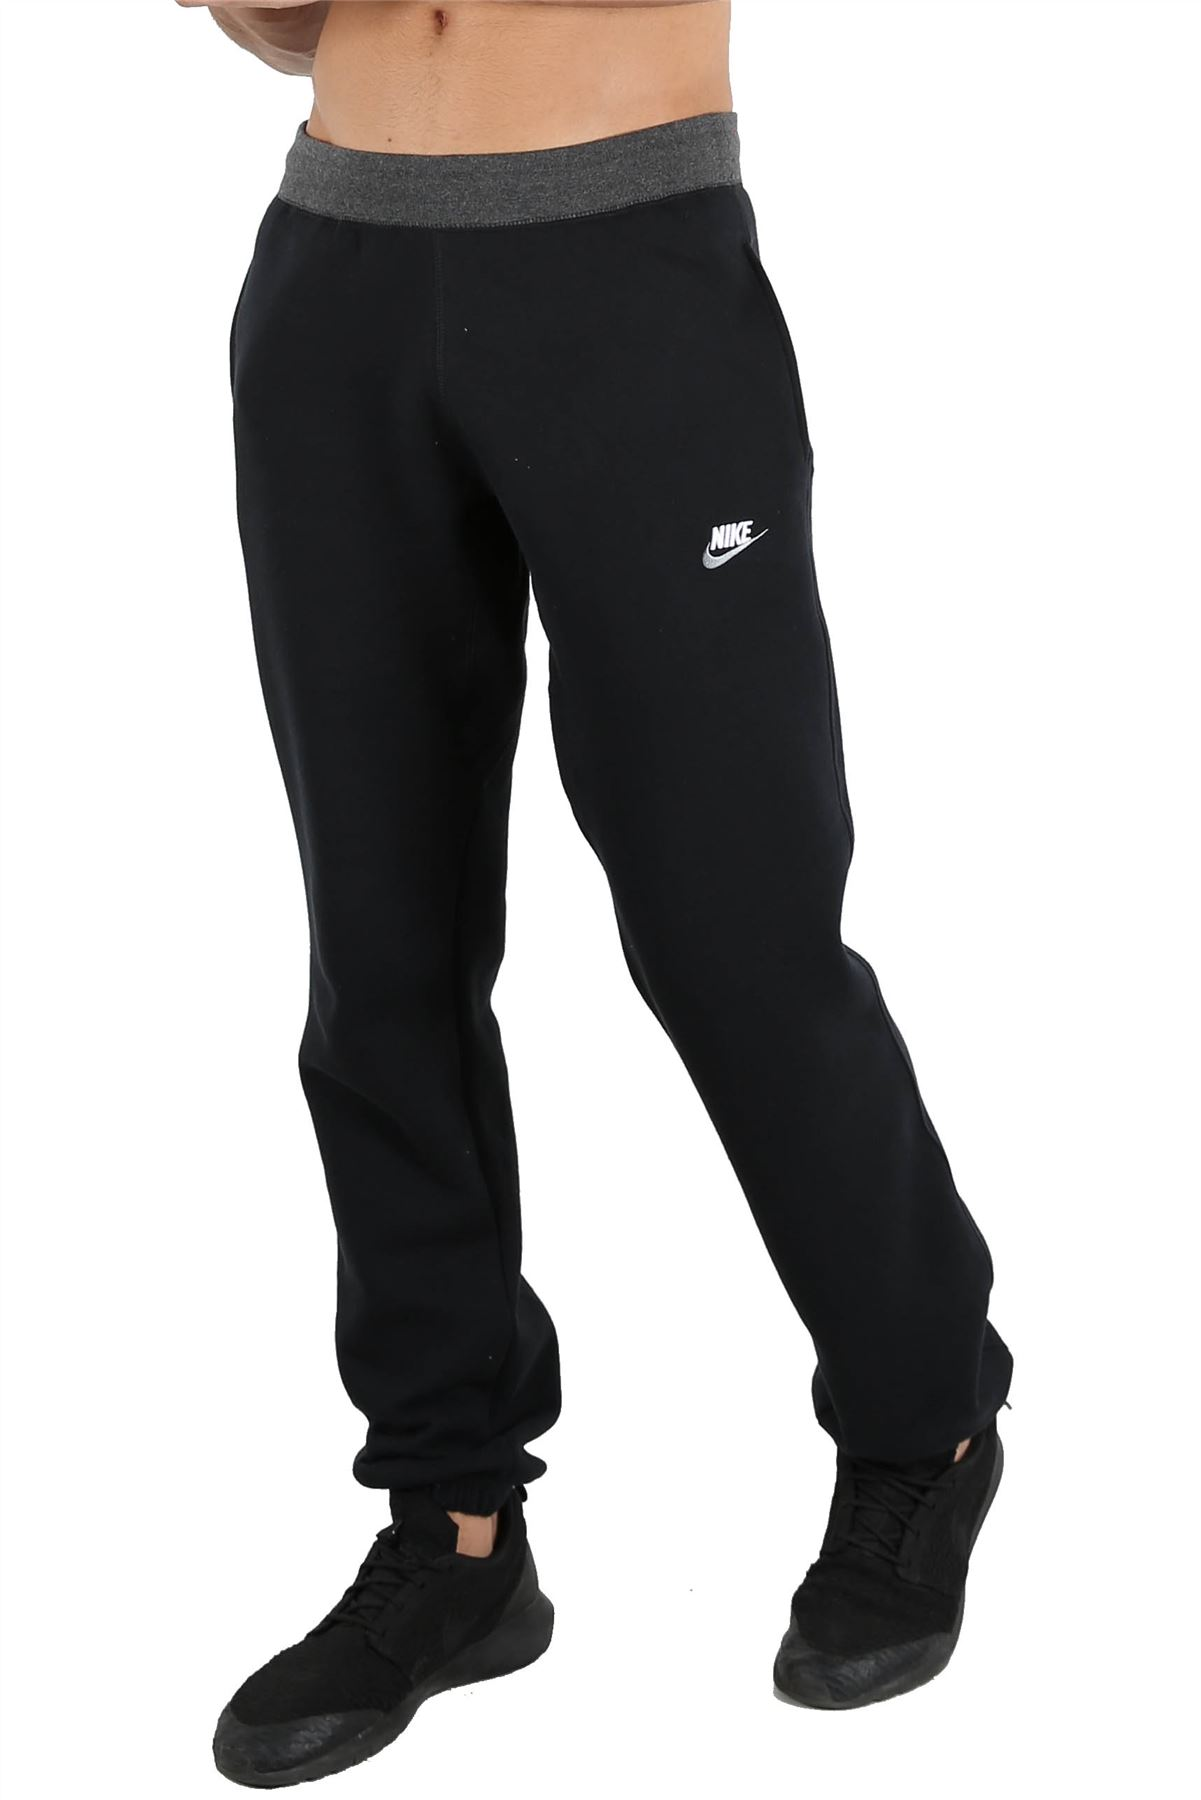 Find great deals on eBay for sweatpants back pocket. Shop with confidence.